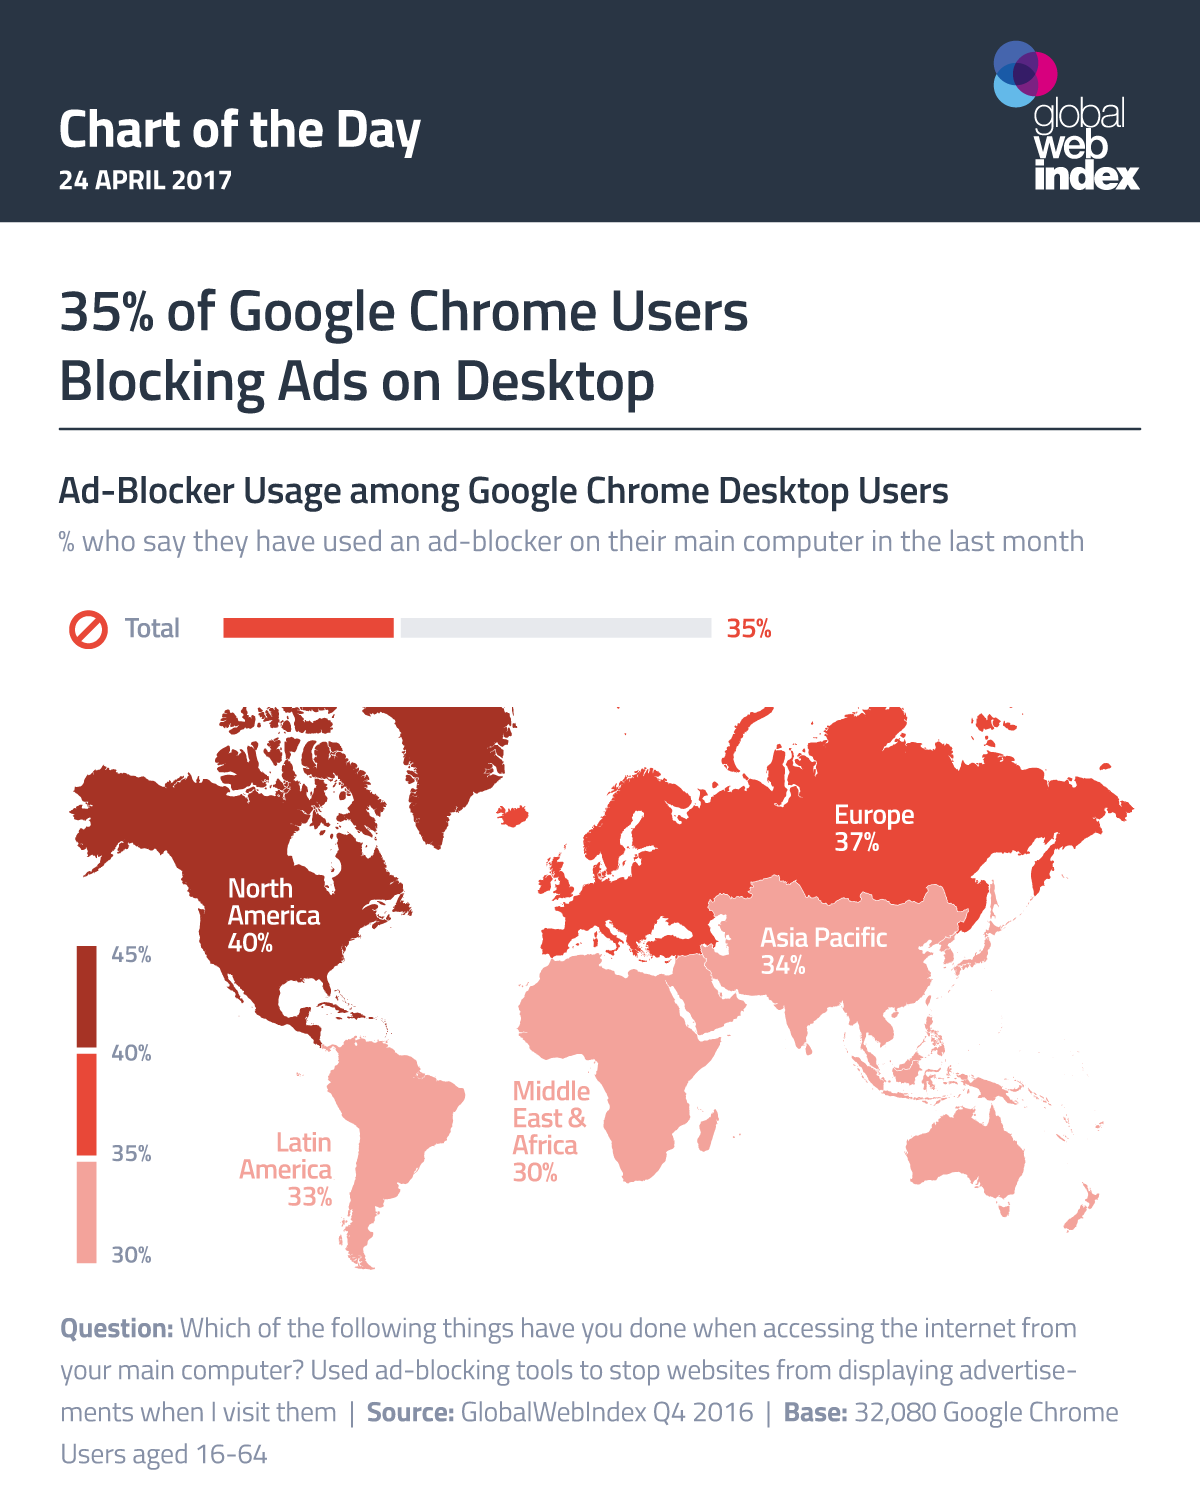 35% of Google Chrome Users Blocking Ads on Desktop